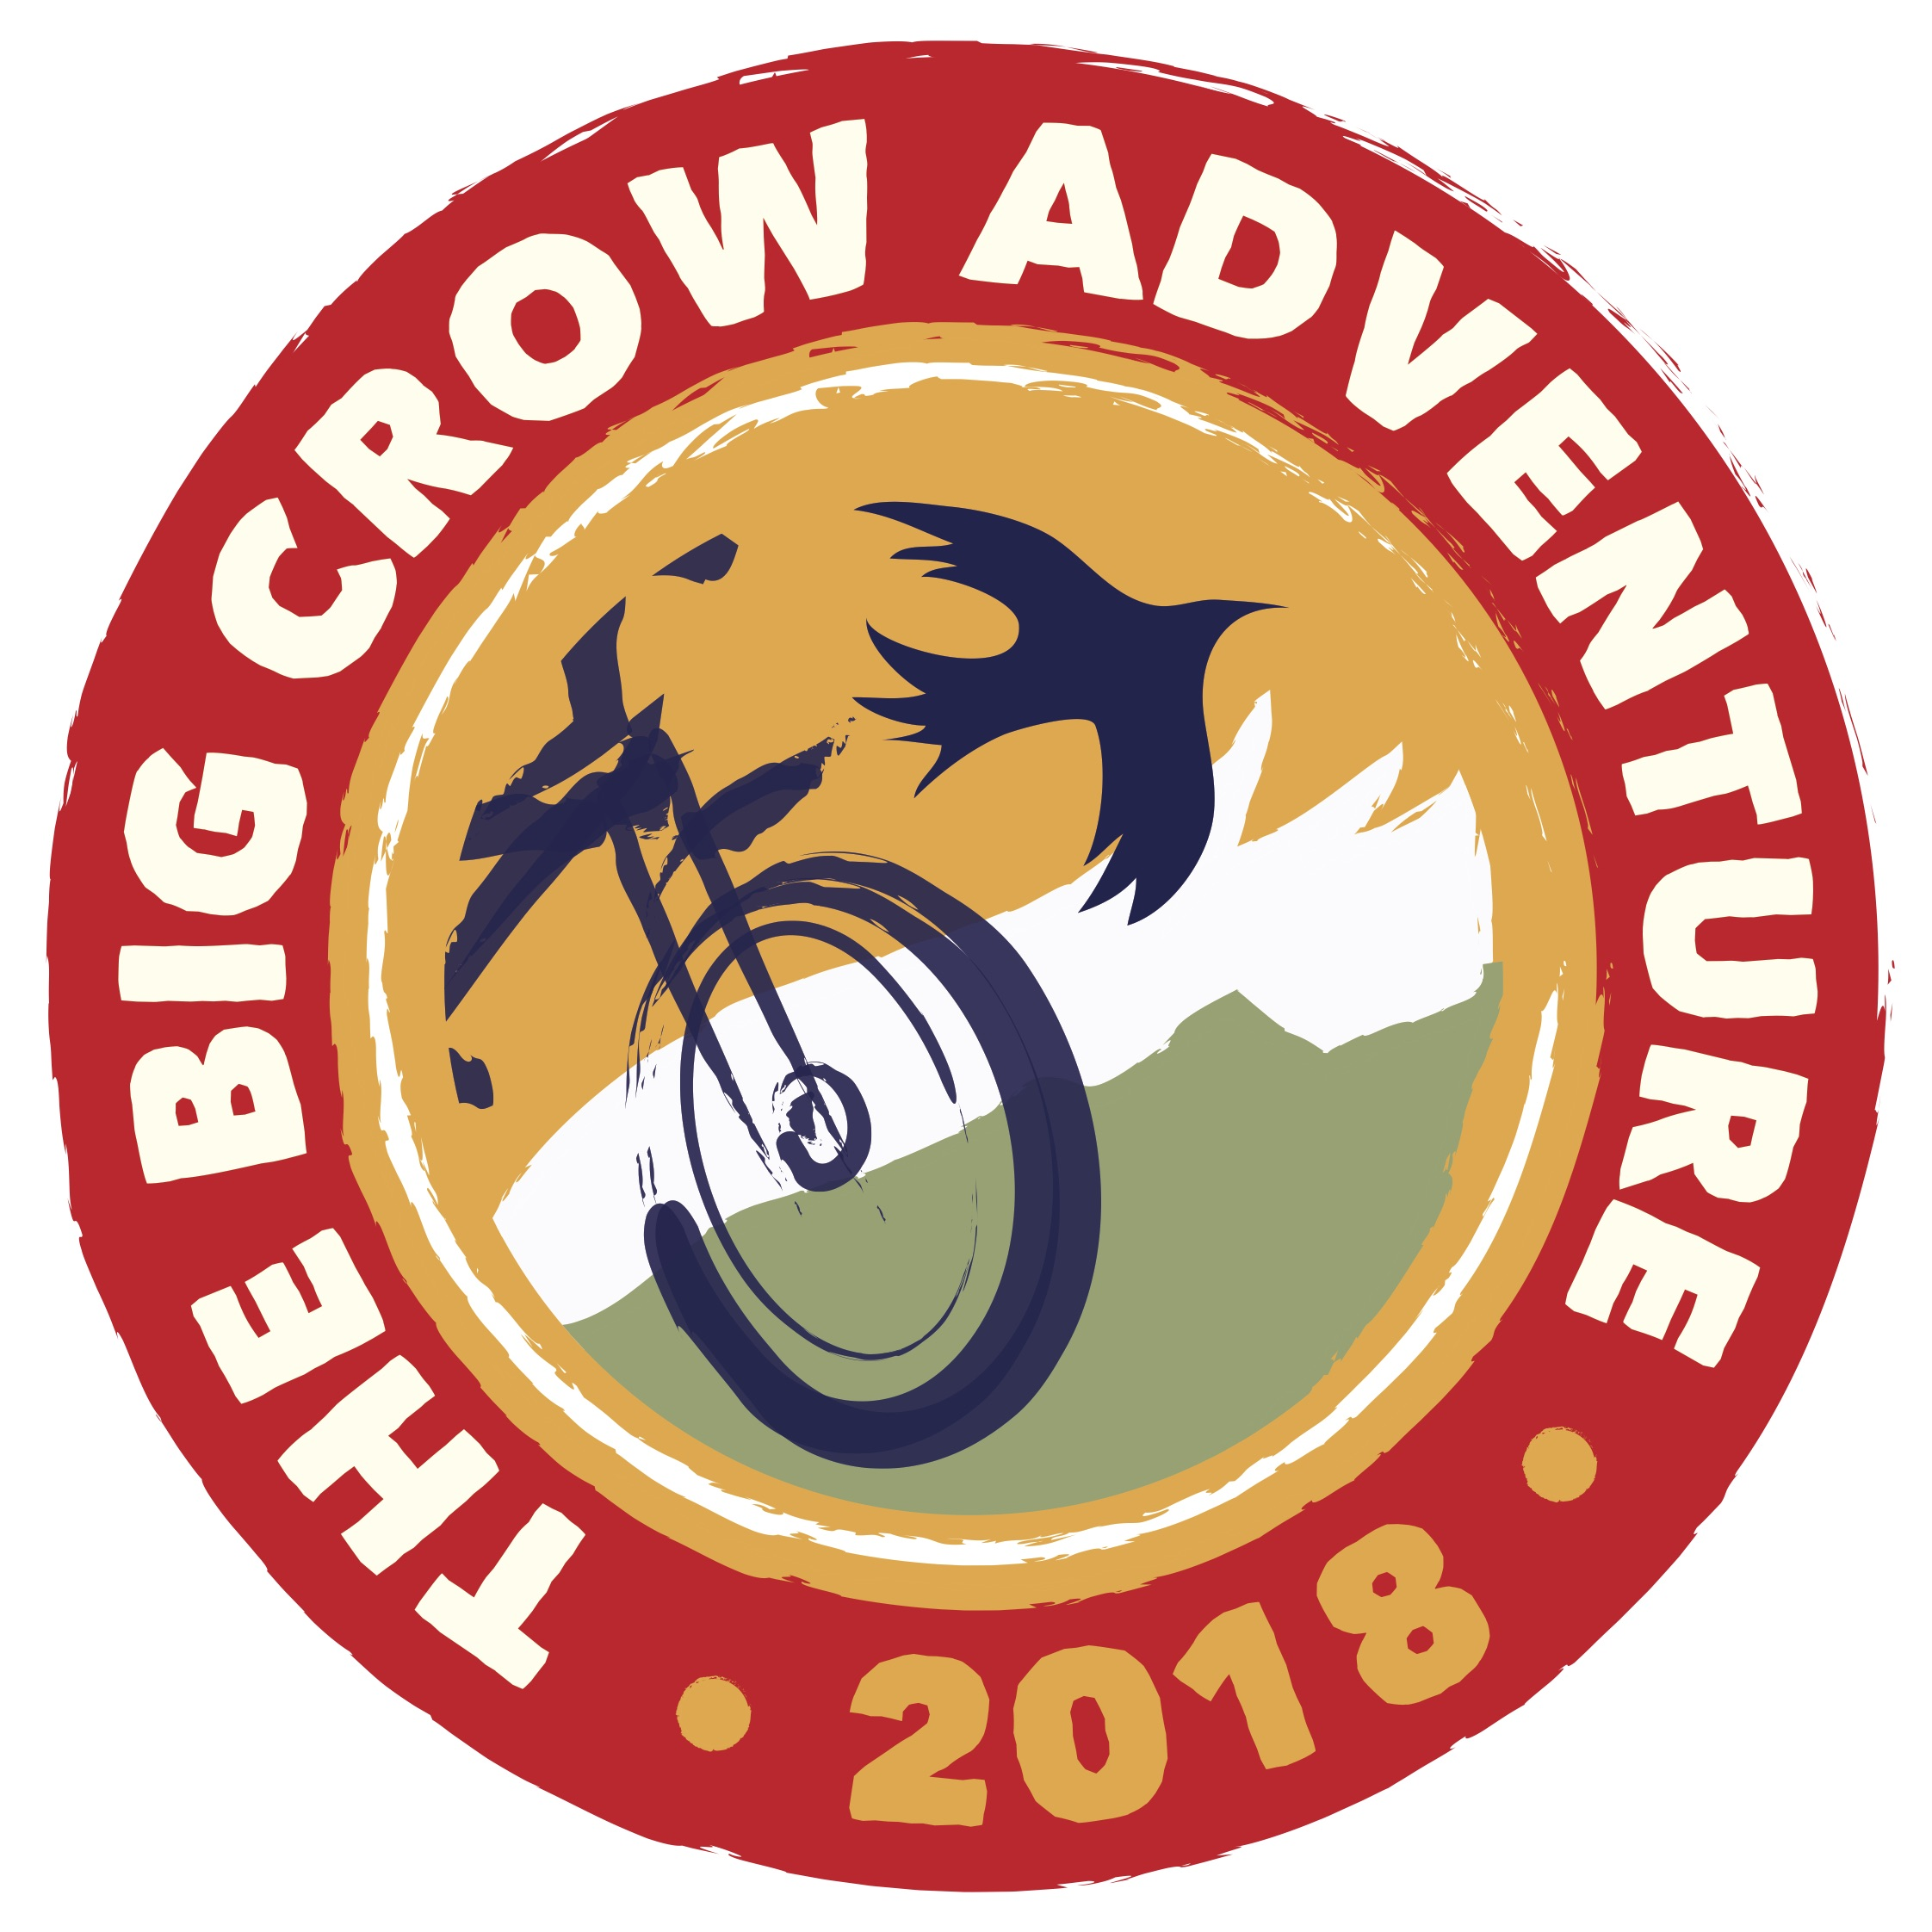 THE BIG CROW ADVENTURE ANGLED PRINT